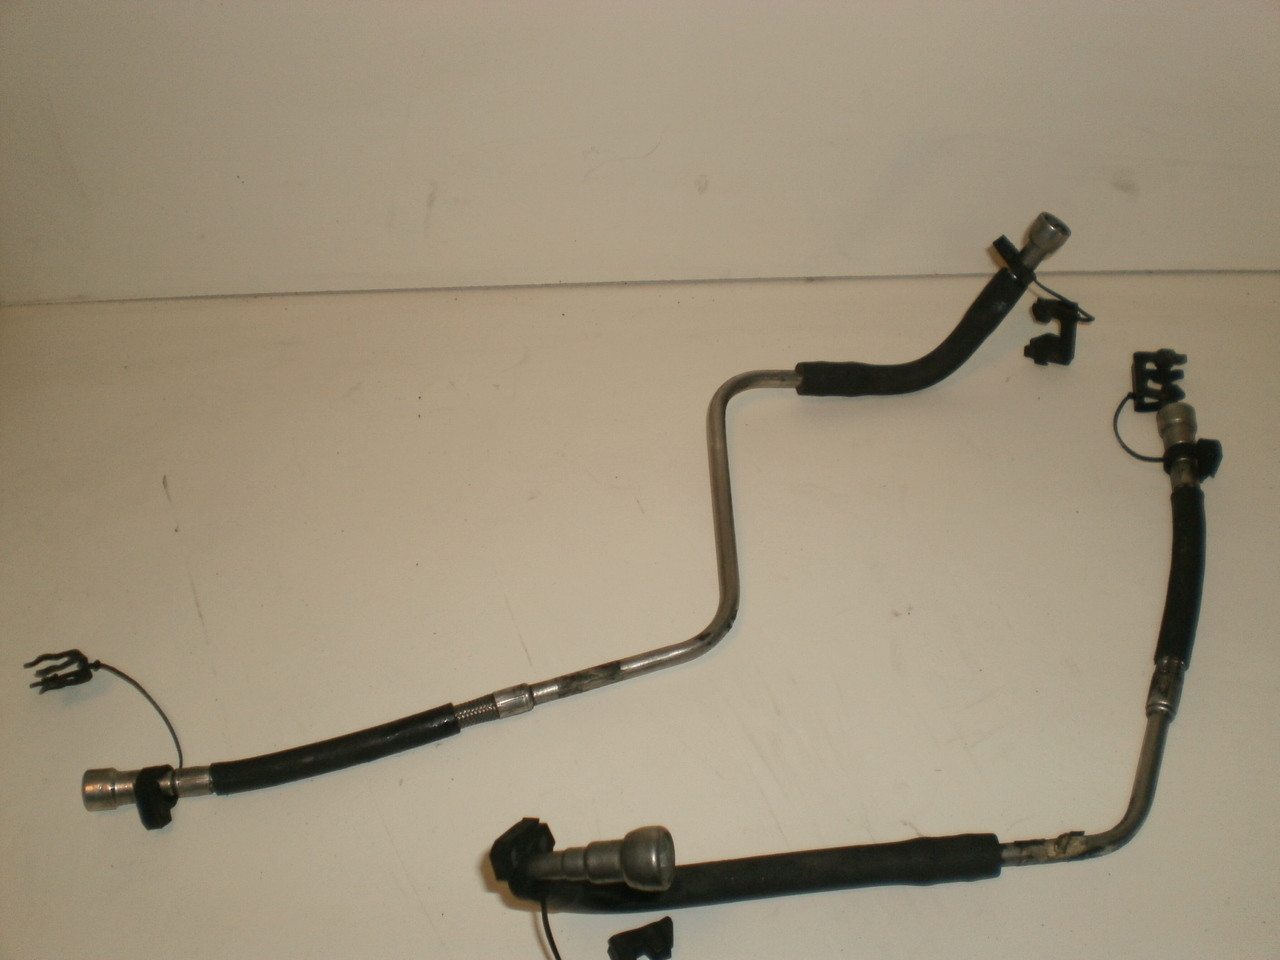 1998 Ford Mustang Flexible Fuel Line Pump to Filter Pressure Return GT Lx  CobraFord , Lincoln , Mercury Parts